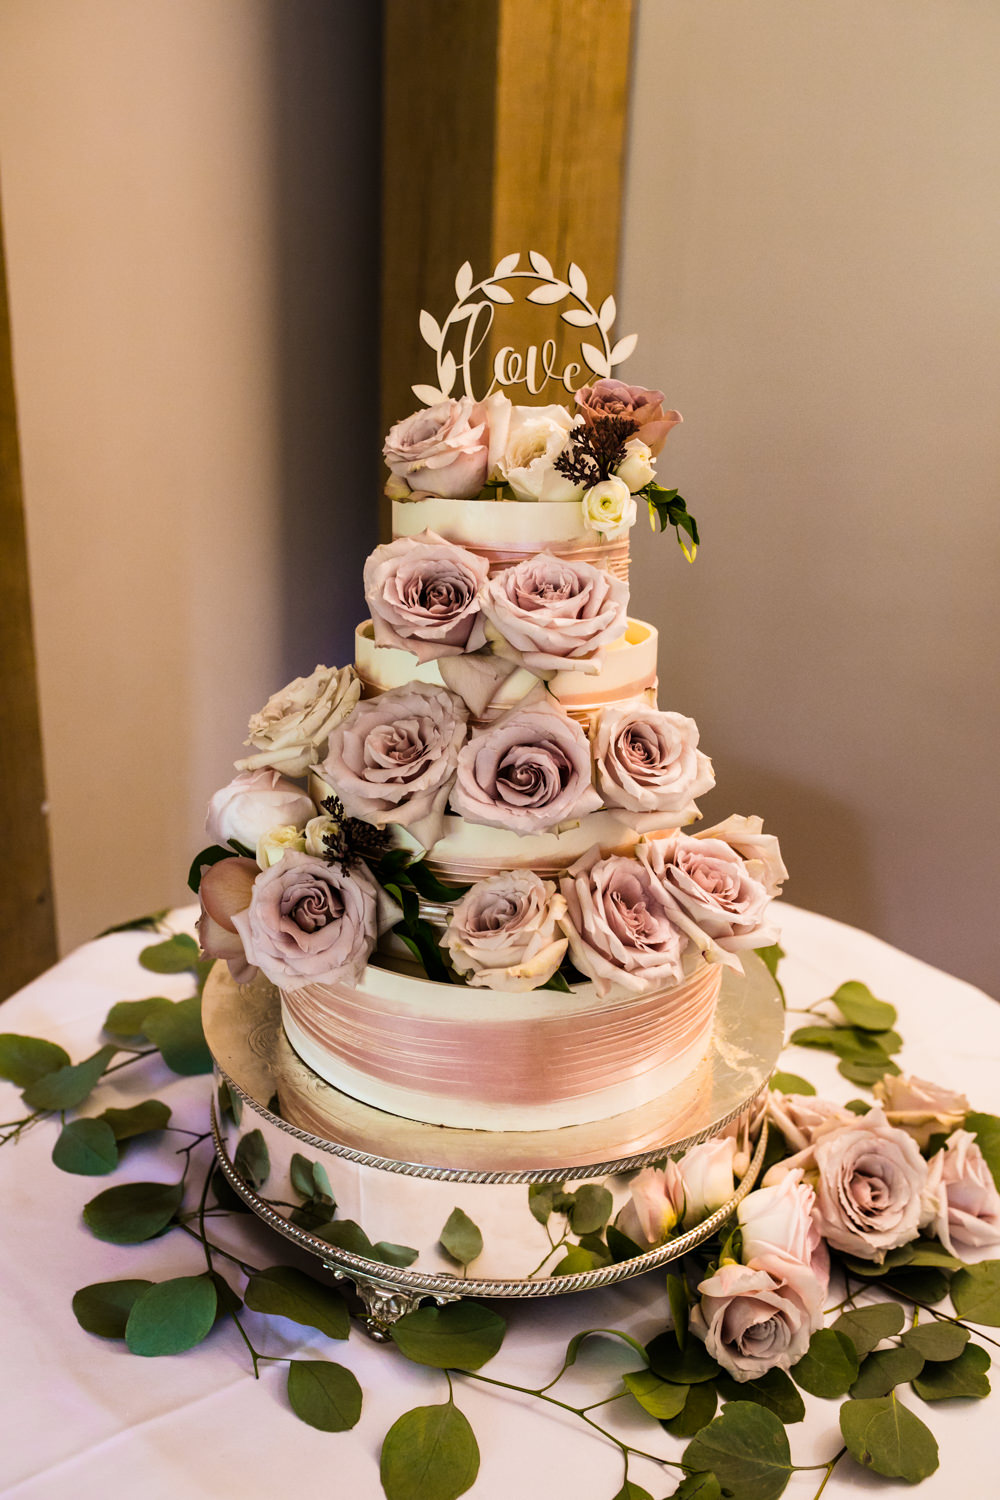 Flowers Floral Antique Rose Pink Cream Cake Buttercream Laser Cut Topper Greenery Mill Barns Wedding Cassandra Lane Photography